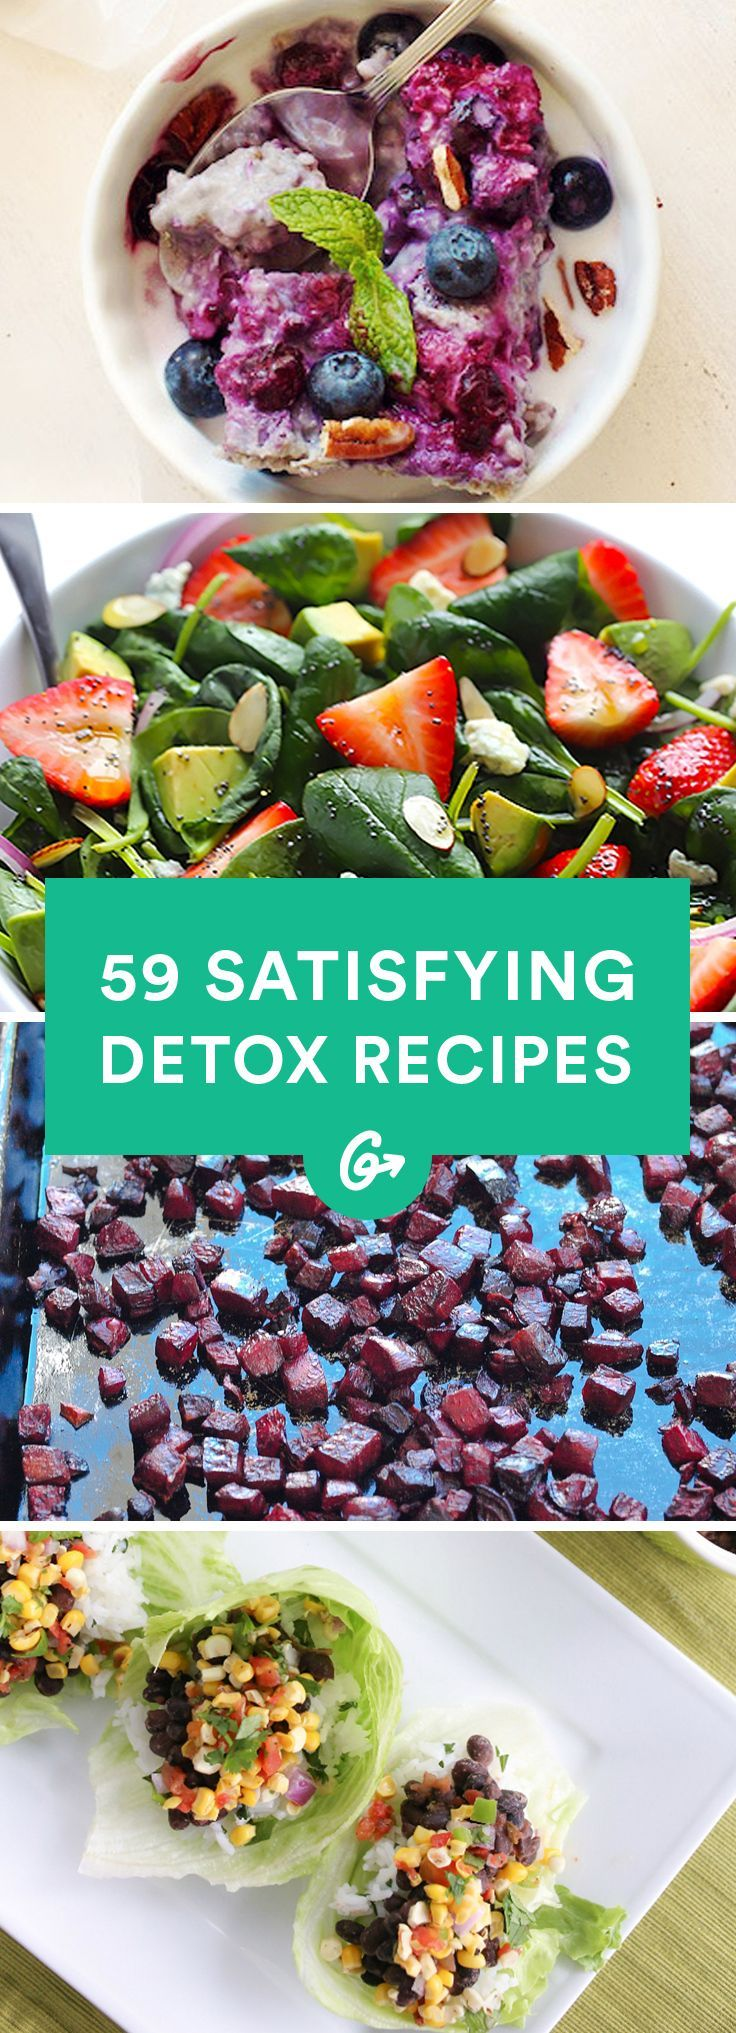 "when we say ""detox,"" we're talking about refocusing the mind, body, and palate on healthy, tasty, and nutritious foods.  #detox #recipes http://greatist.com/health/new-year-detox-recipes"